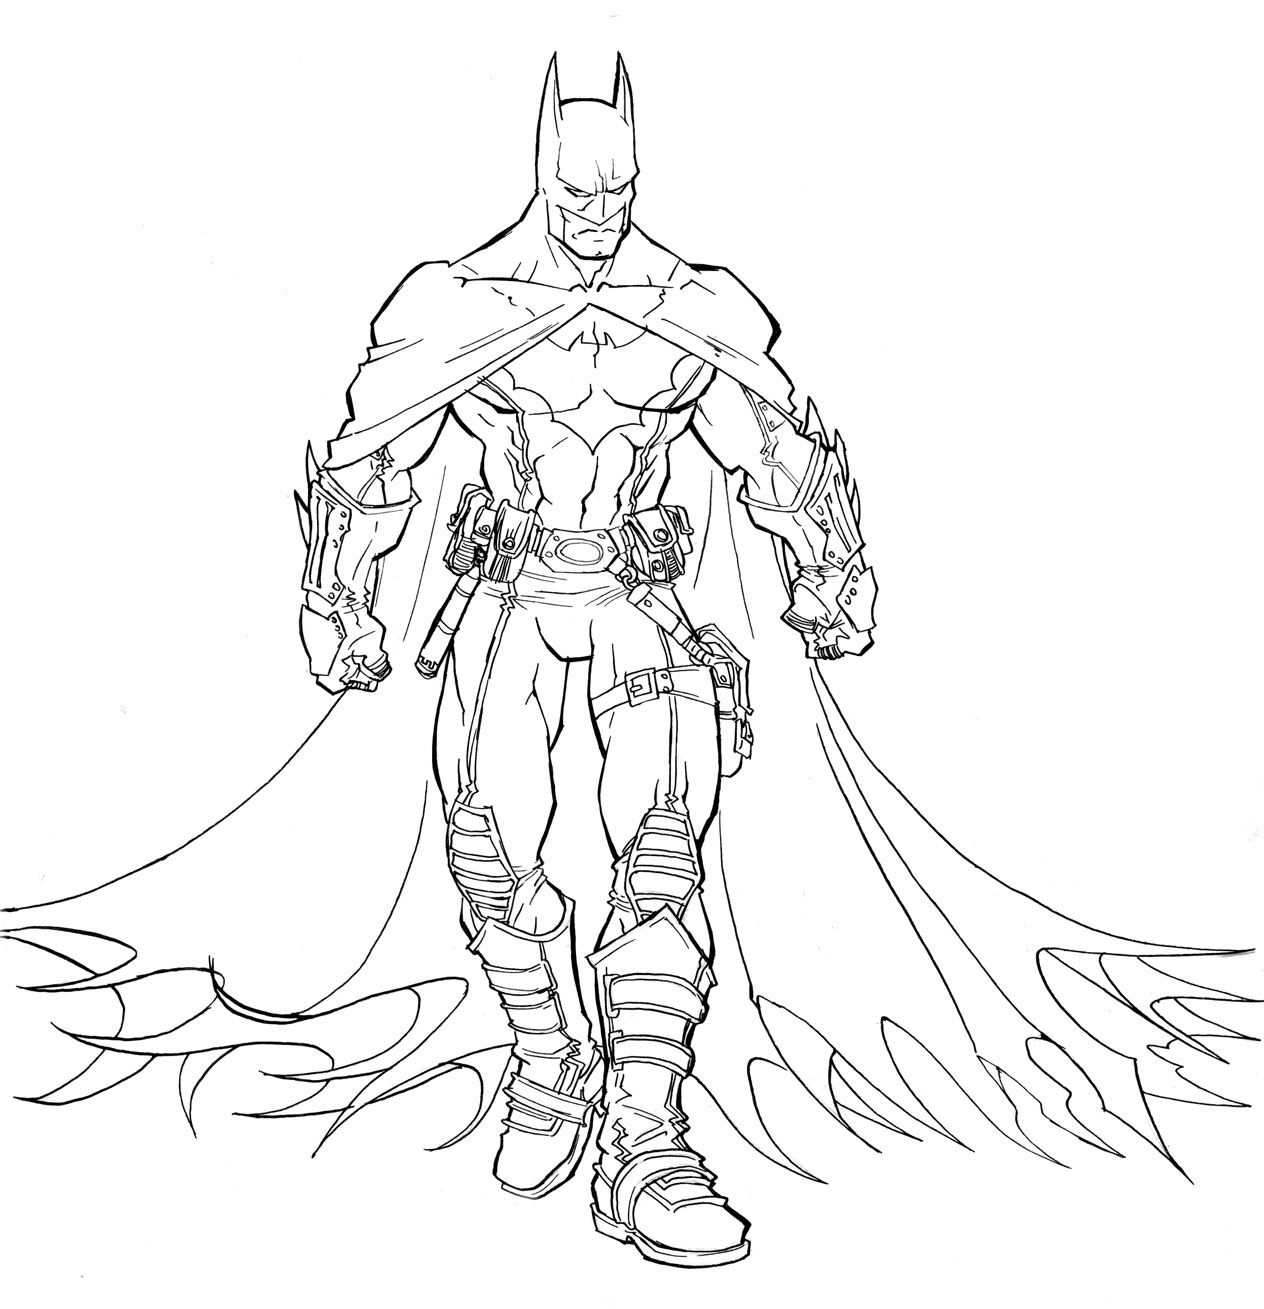 Pin by SUSIE Petri on LineArt: Batman-Family, Friends